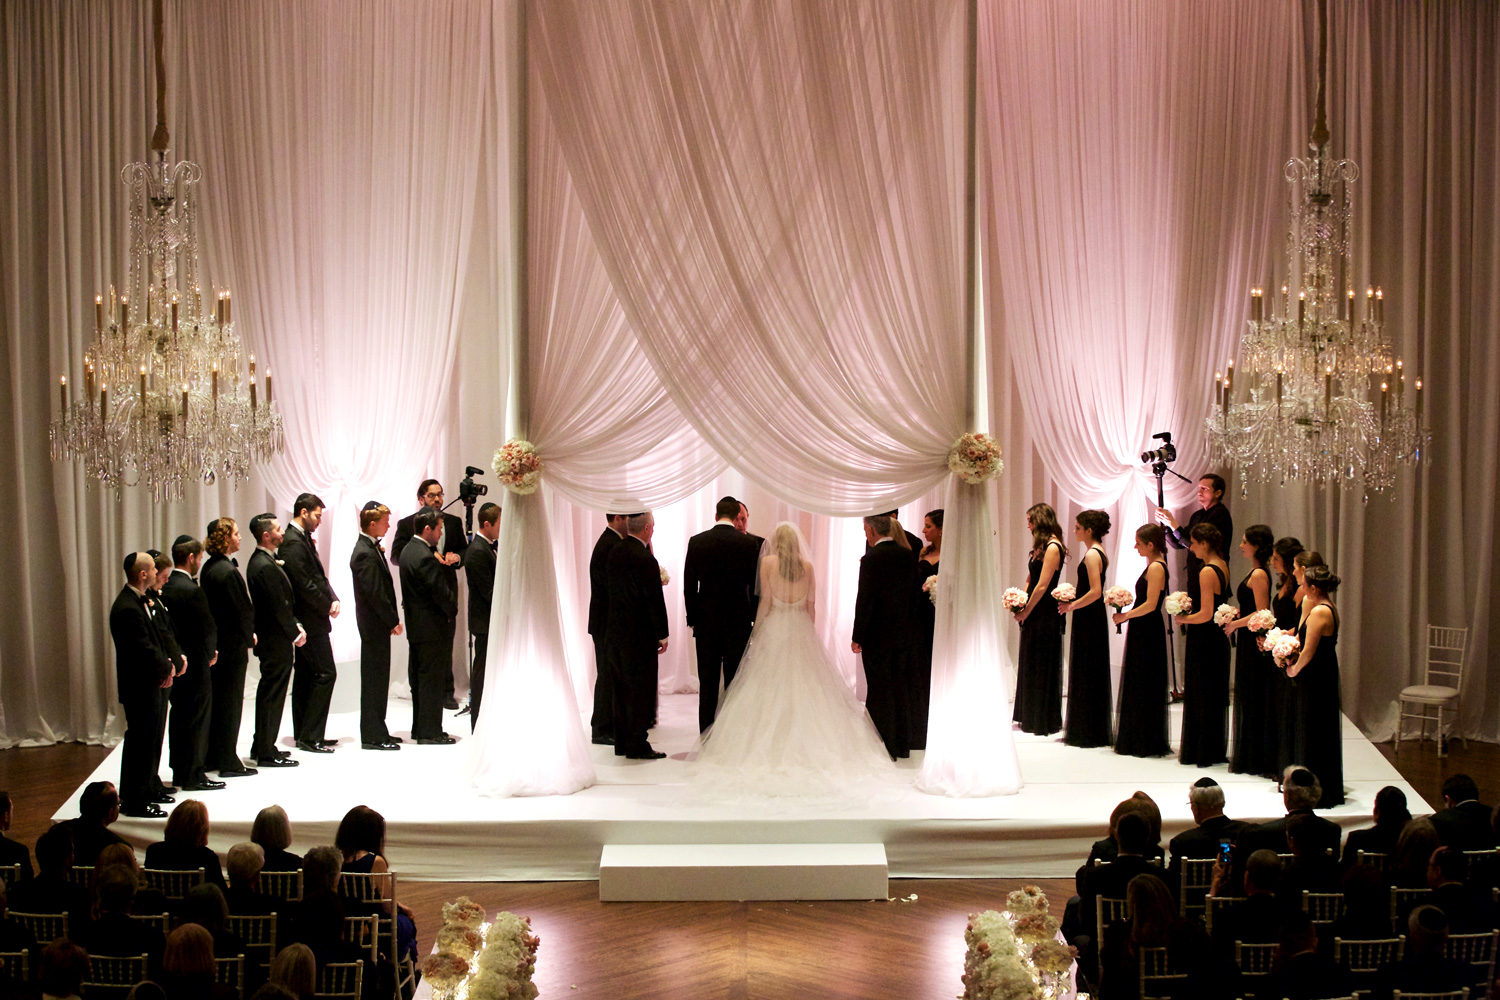 tall chuppah with made rom white drapery for indoor jewish wedding